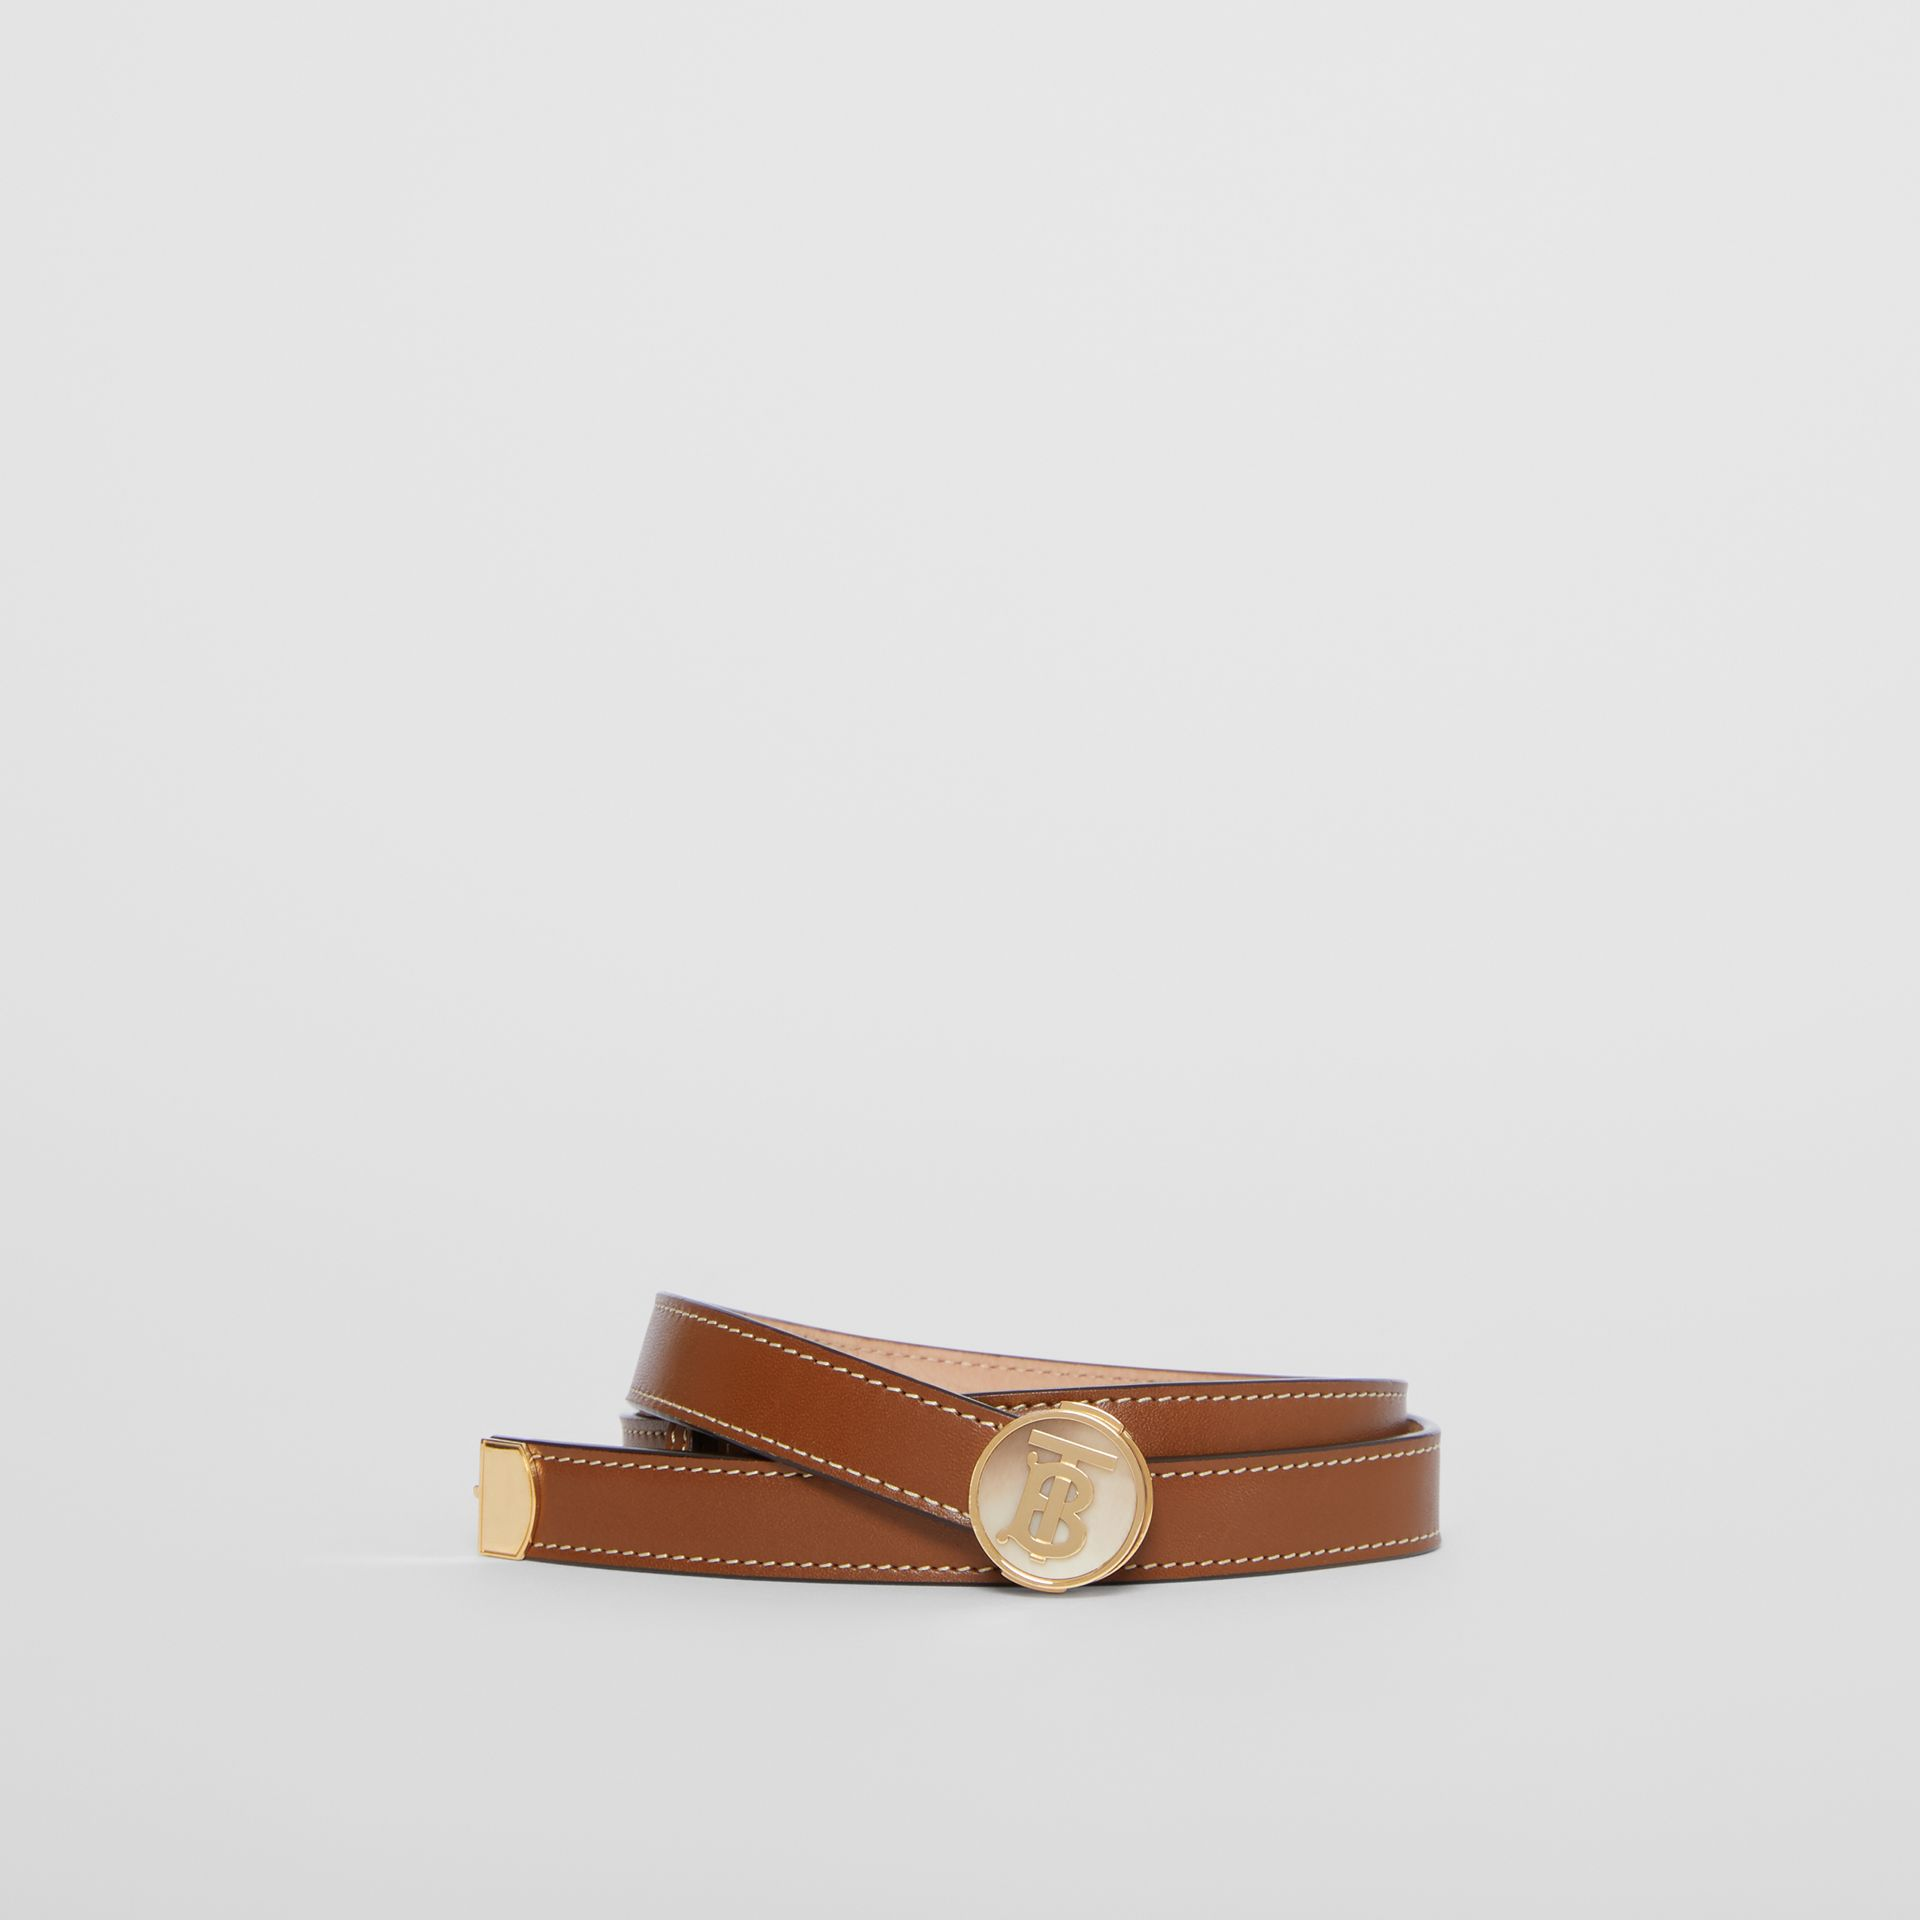 Monogram Motif Leather Belt in Tan - Women | Burberry - gallery image 0